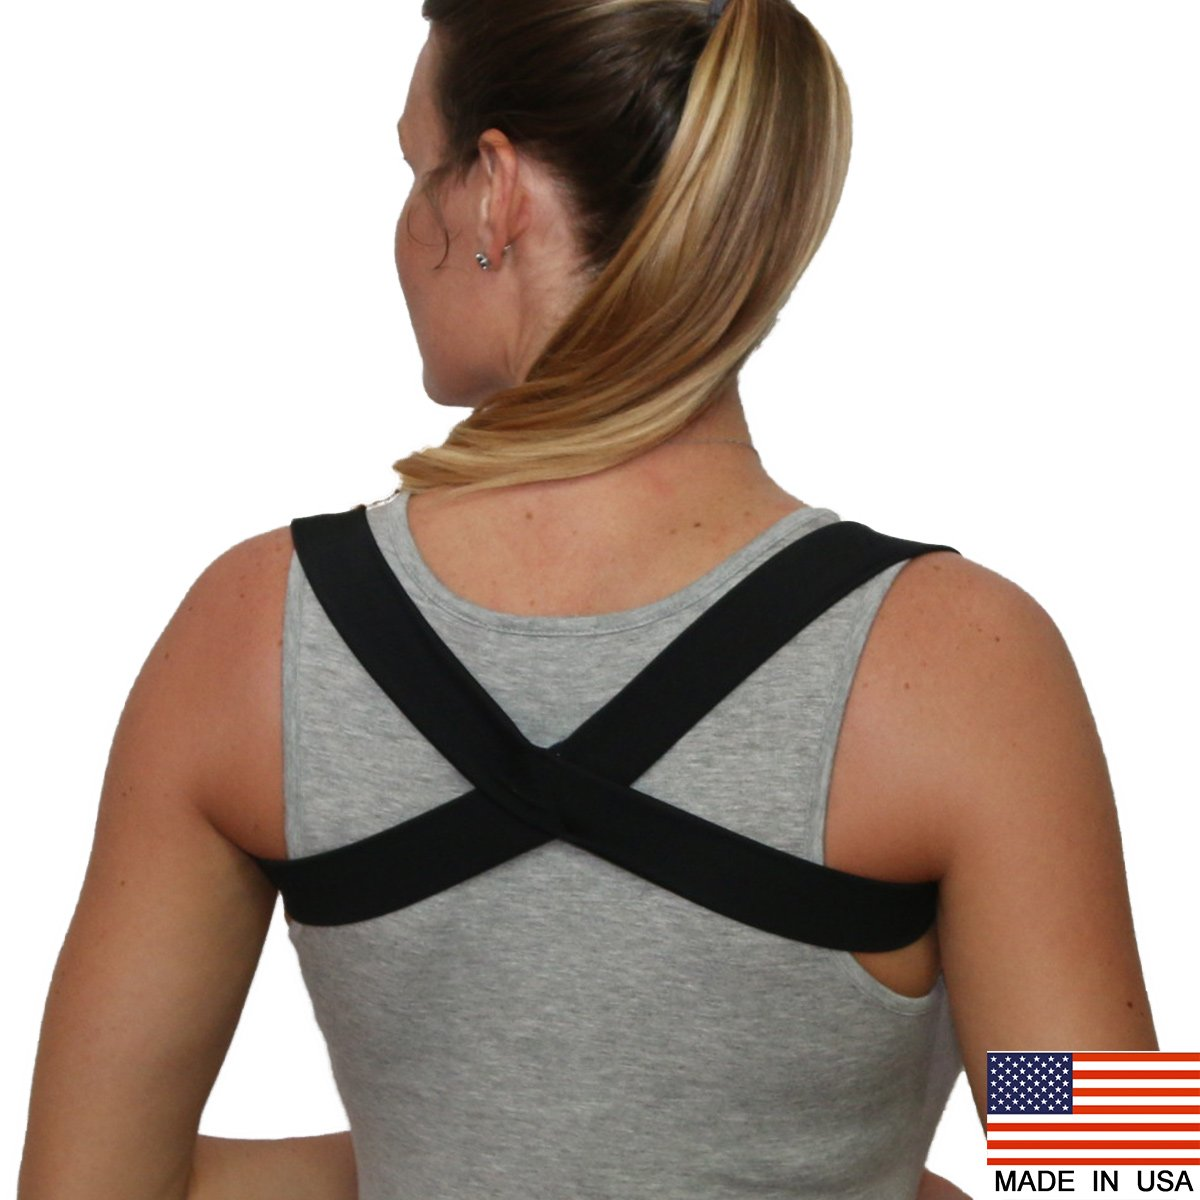 The 2 in 1 Posture Brace | Posturific Brace.com - Posture Corrector (Black Small)